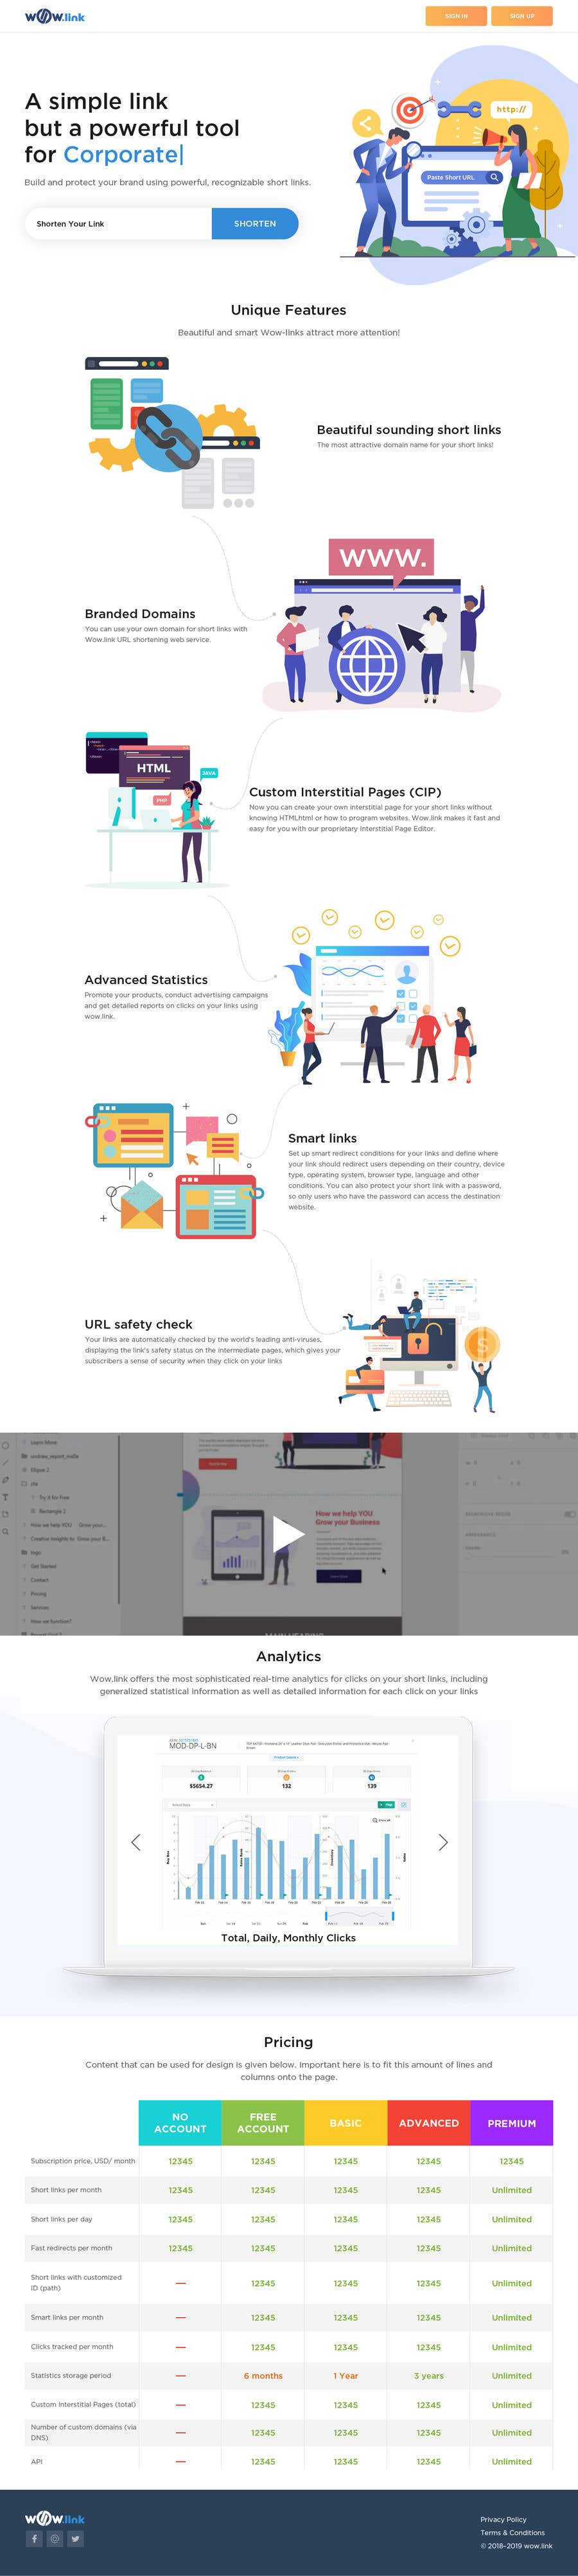 Proposition n°11 du concours Redesign home landing page for wow.link